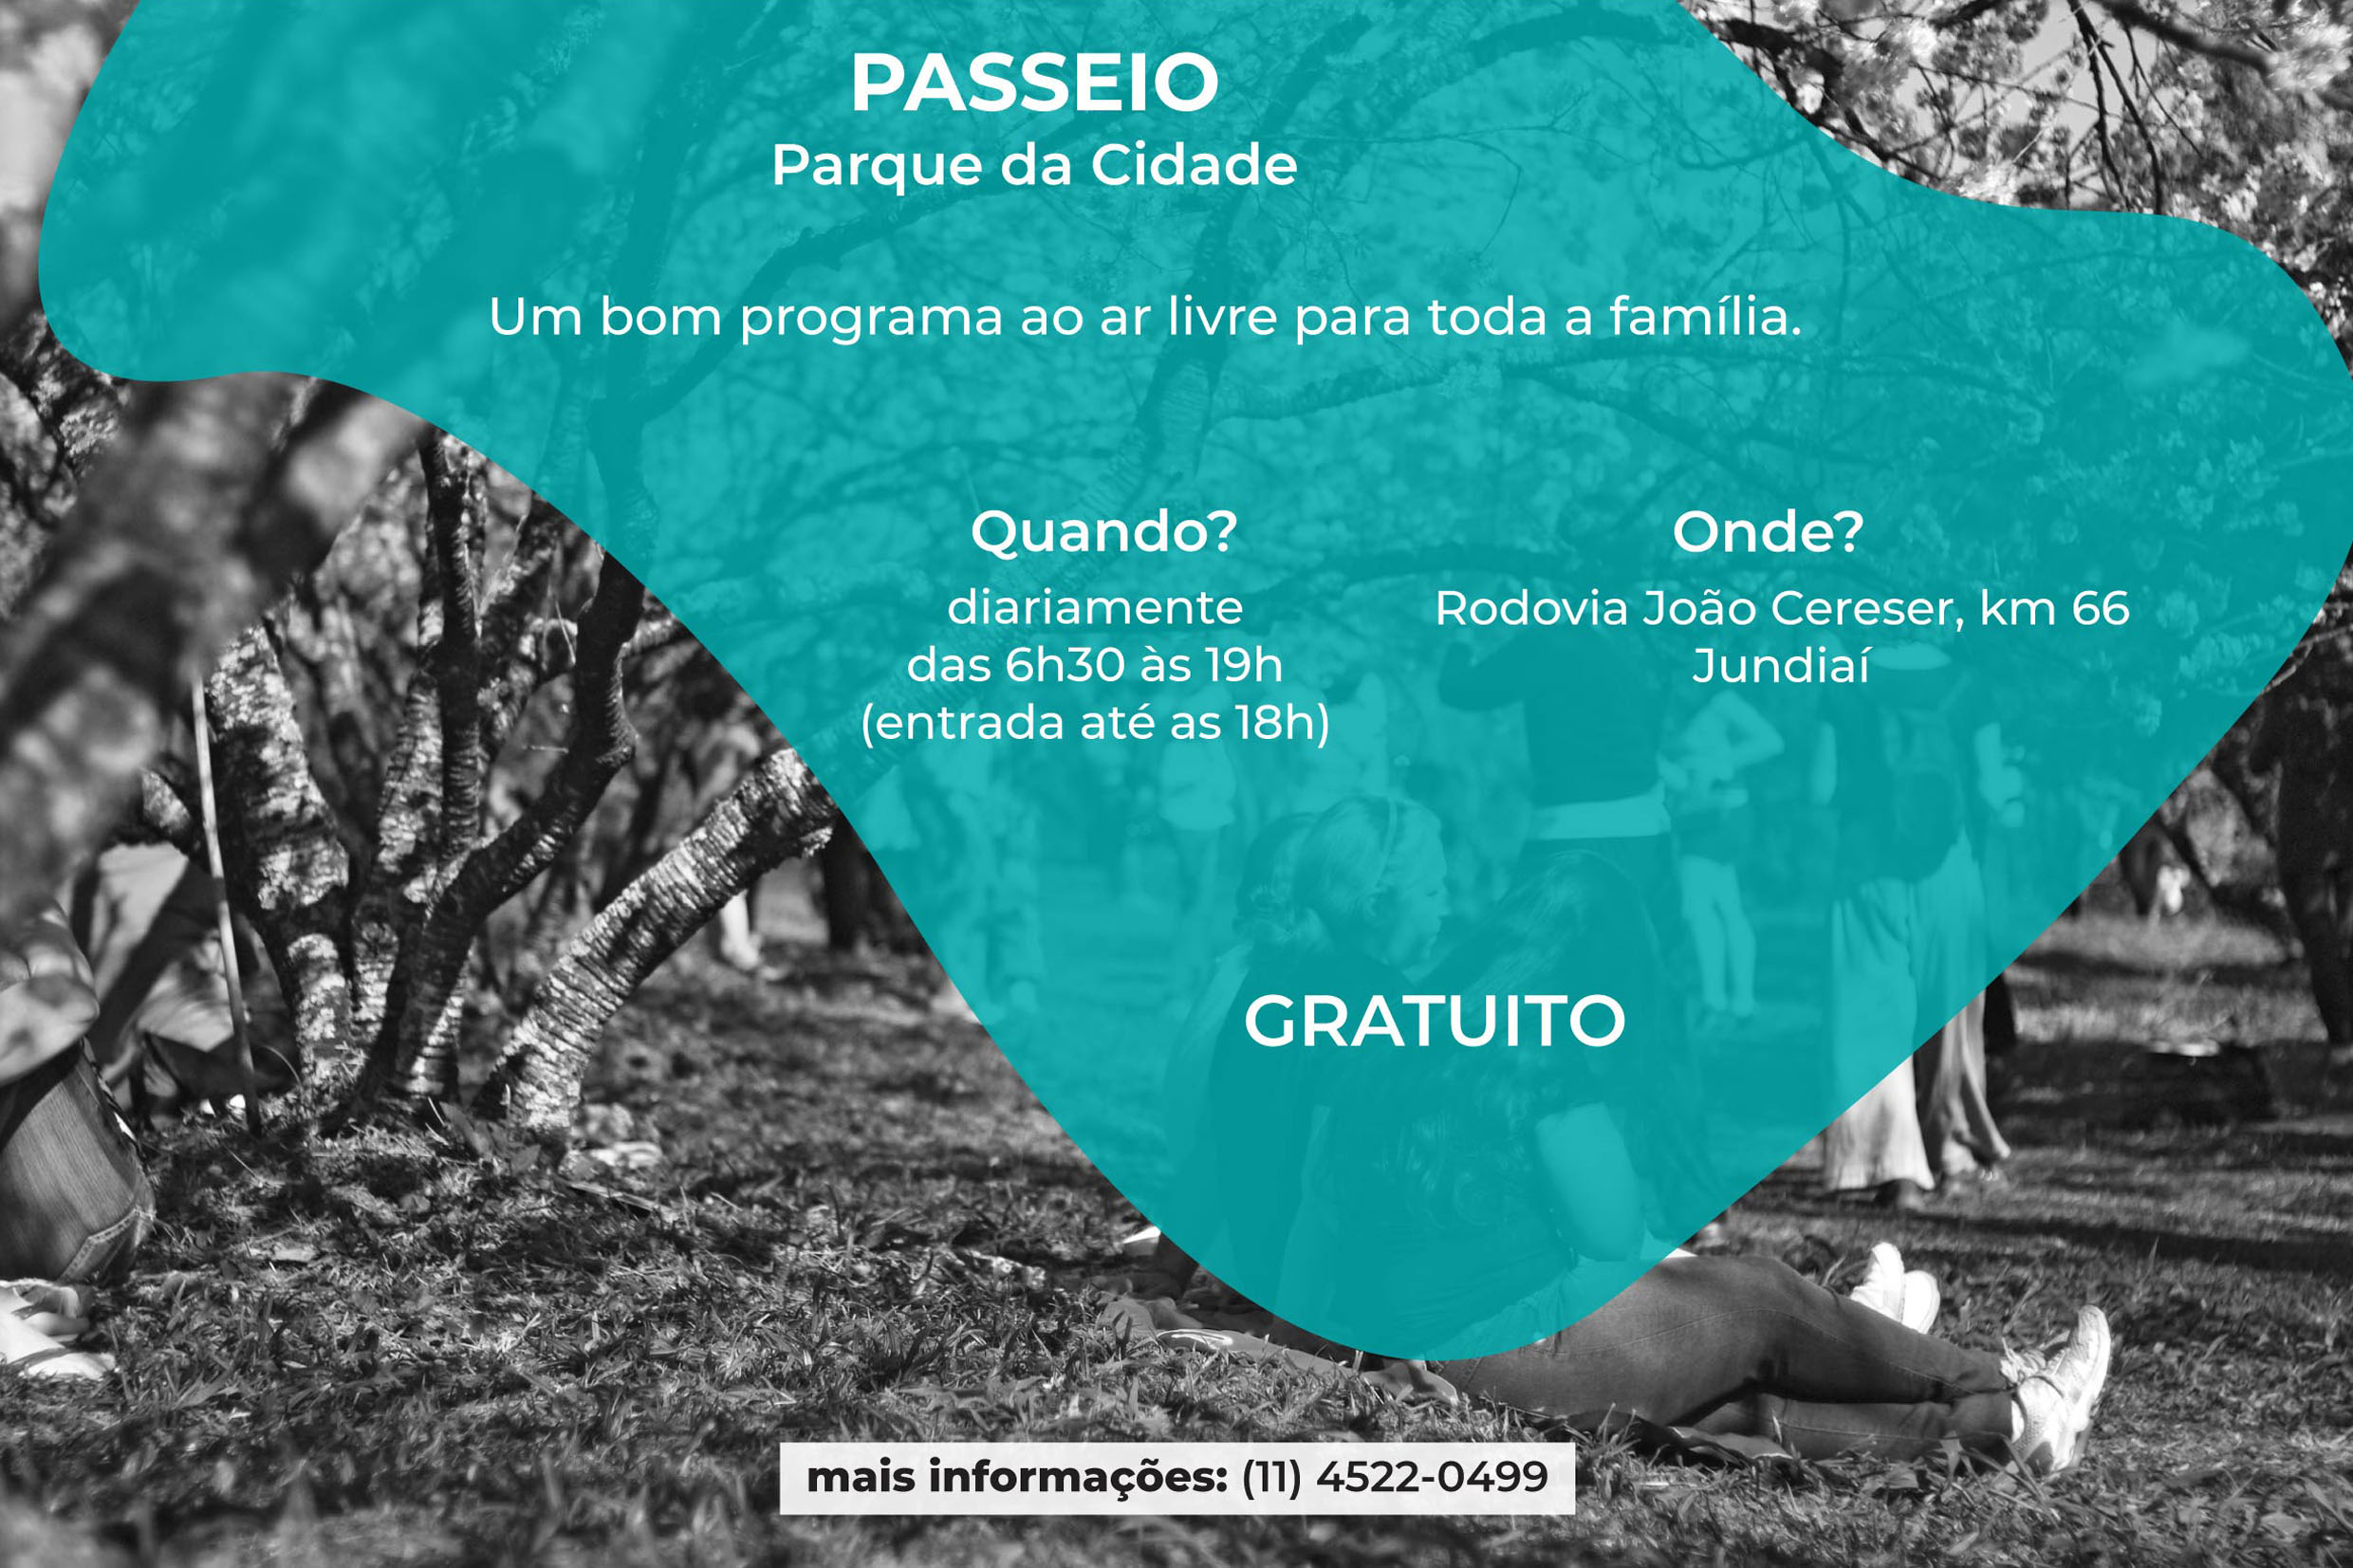 Agência Alesp<a style='float:right' href='https://www3.al.sp.gov.br/repositorio/noticia/N-07-2019/fg236874.jpg' target=_blank><img src='/_img/material-file-download-white.png' width='14px' alt='Clique para baixar a imagem'></a>